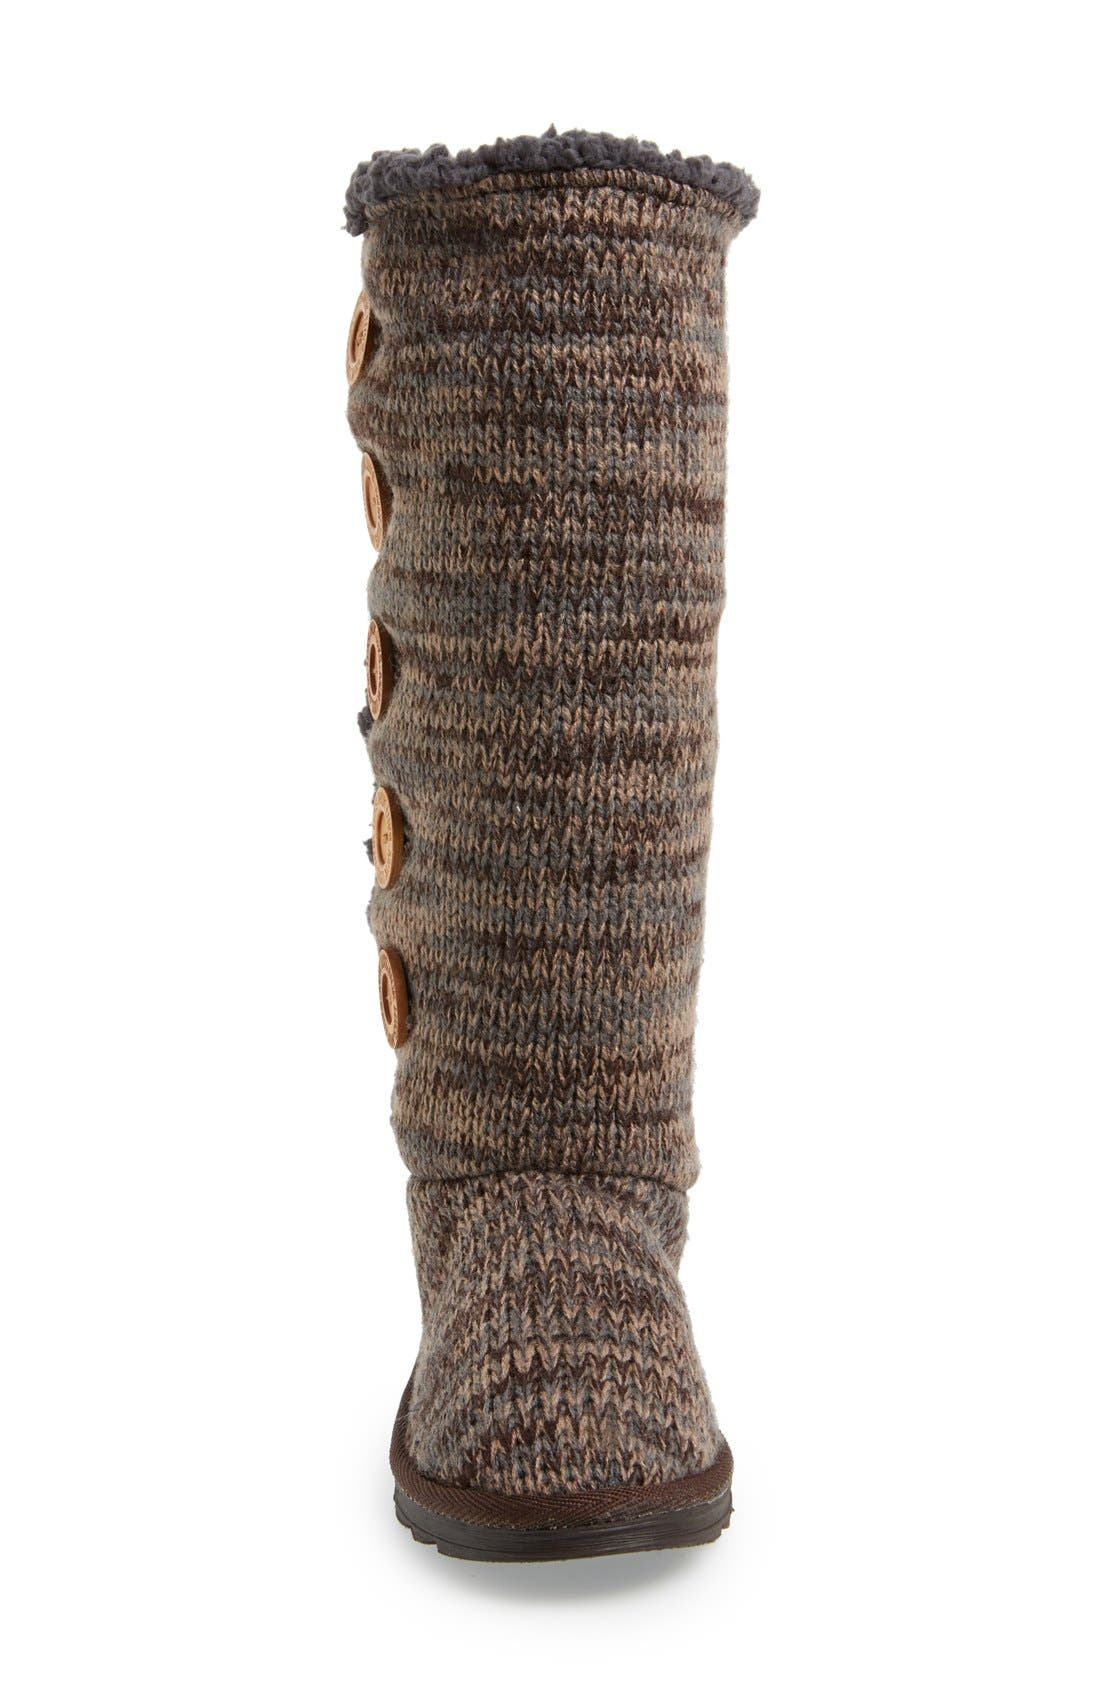 Alternate Image 3  - MUK LUKS 'Malena' Button Up Crochet Boot (Women)